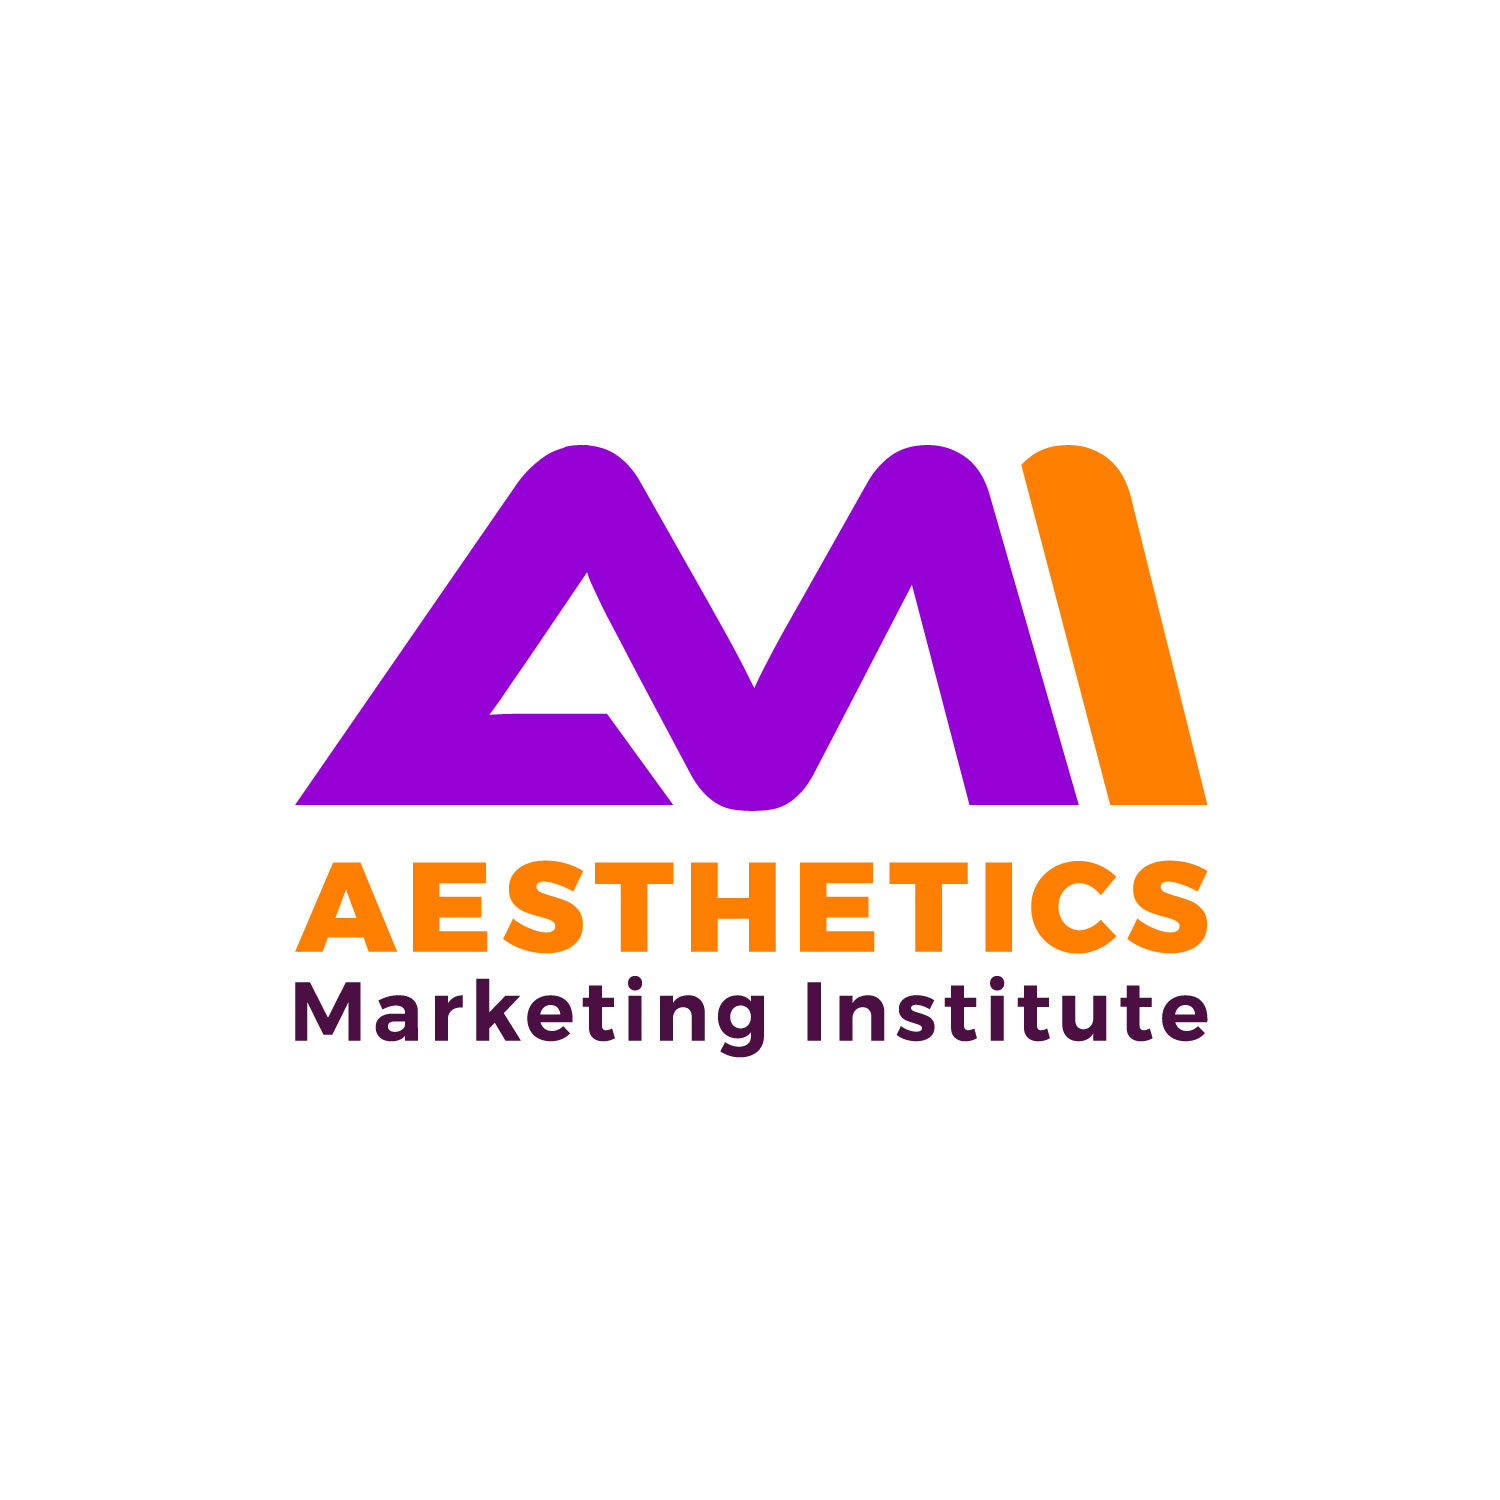 Aesthetics Marketing Institute Educational Courses in Marketing